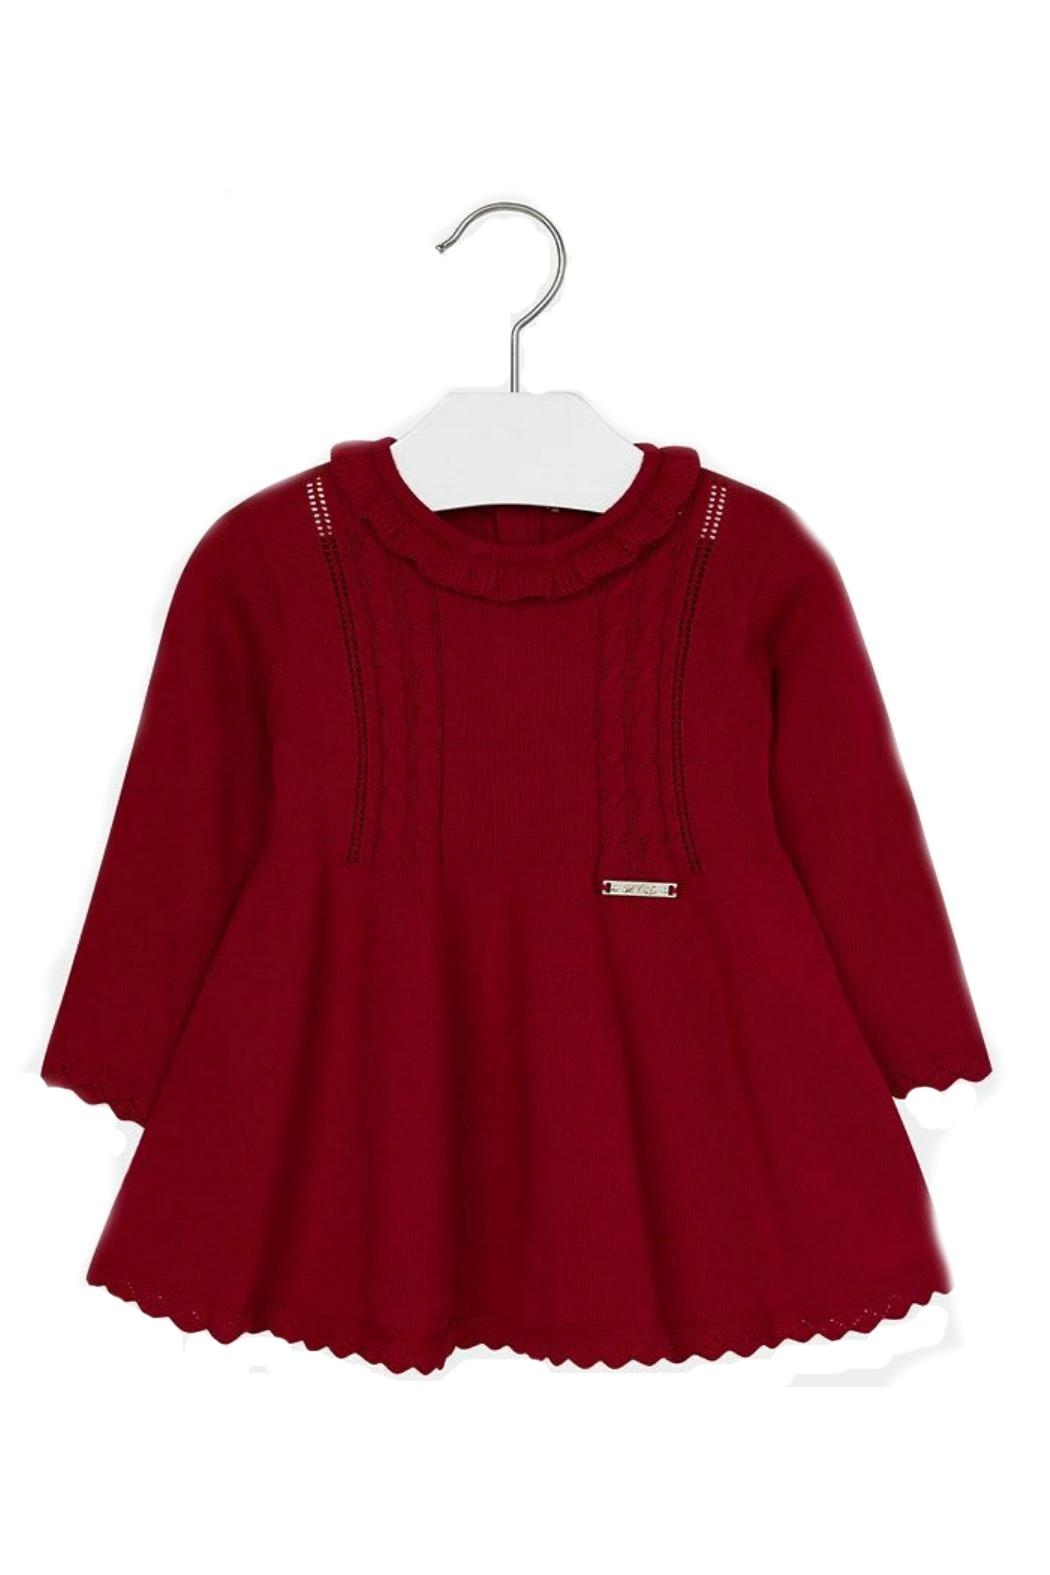 575f849481ec Mayoral Baby-Girl Red-Knit Dress from Florida by Tugboat   the Bird ...